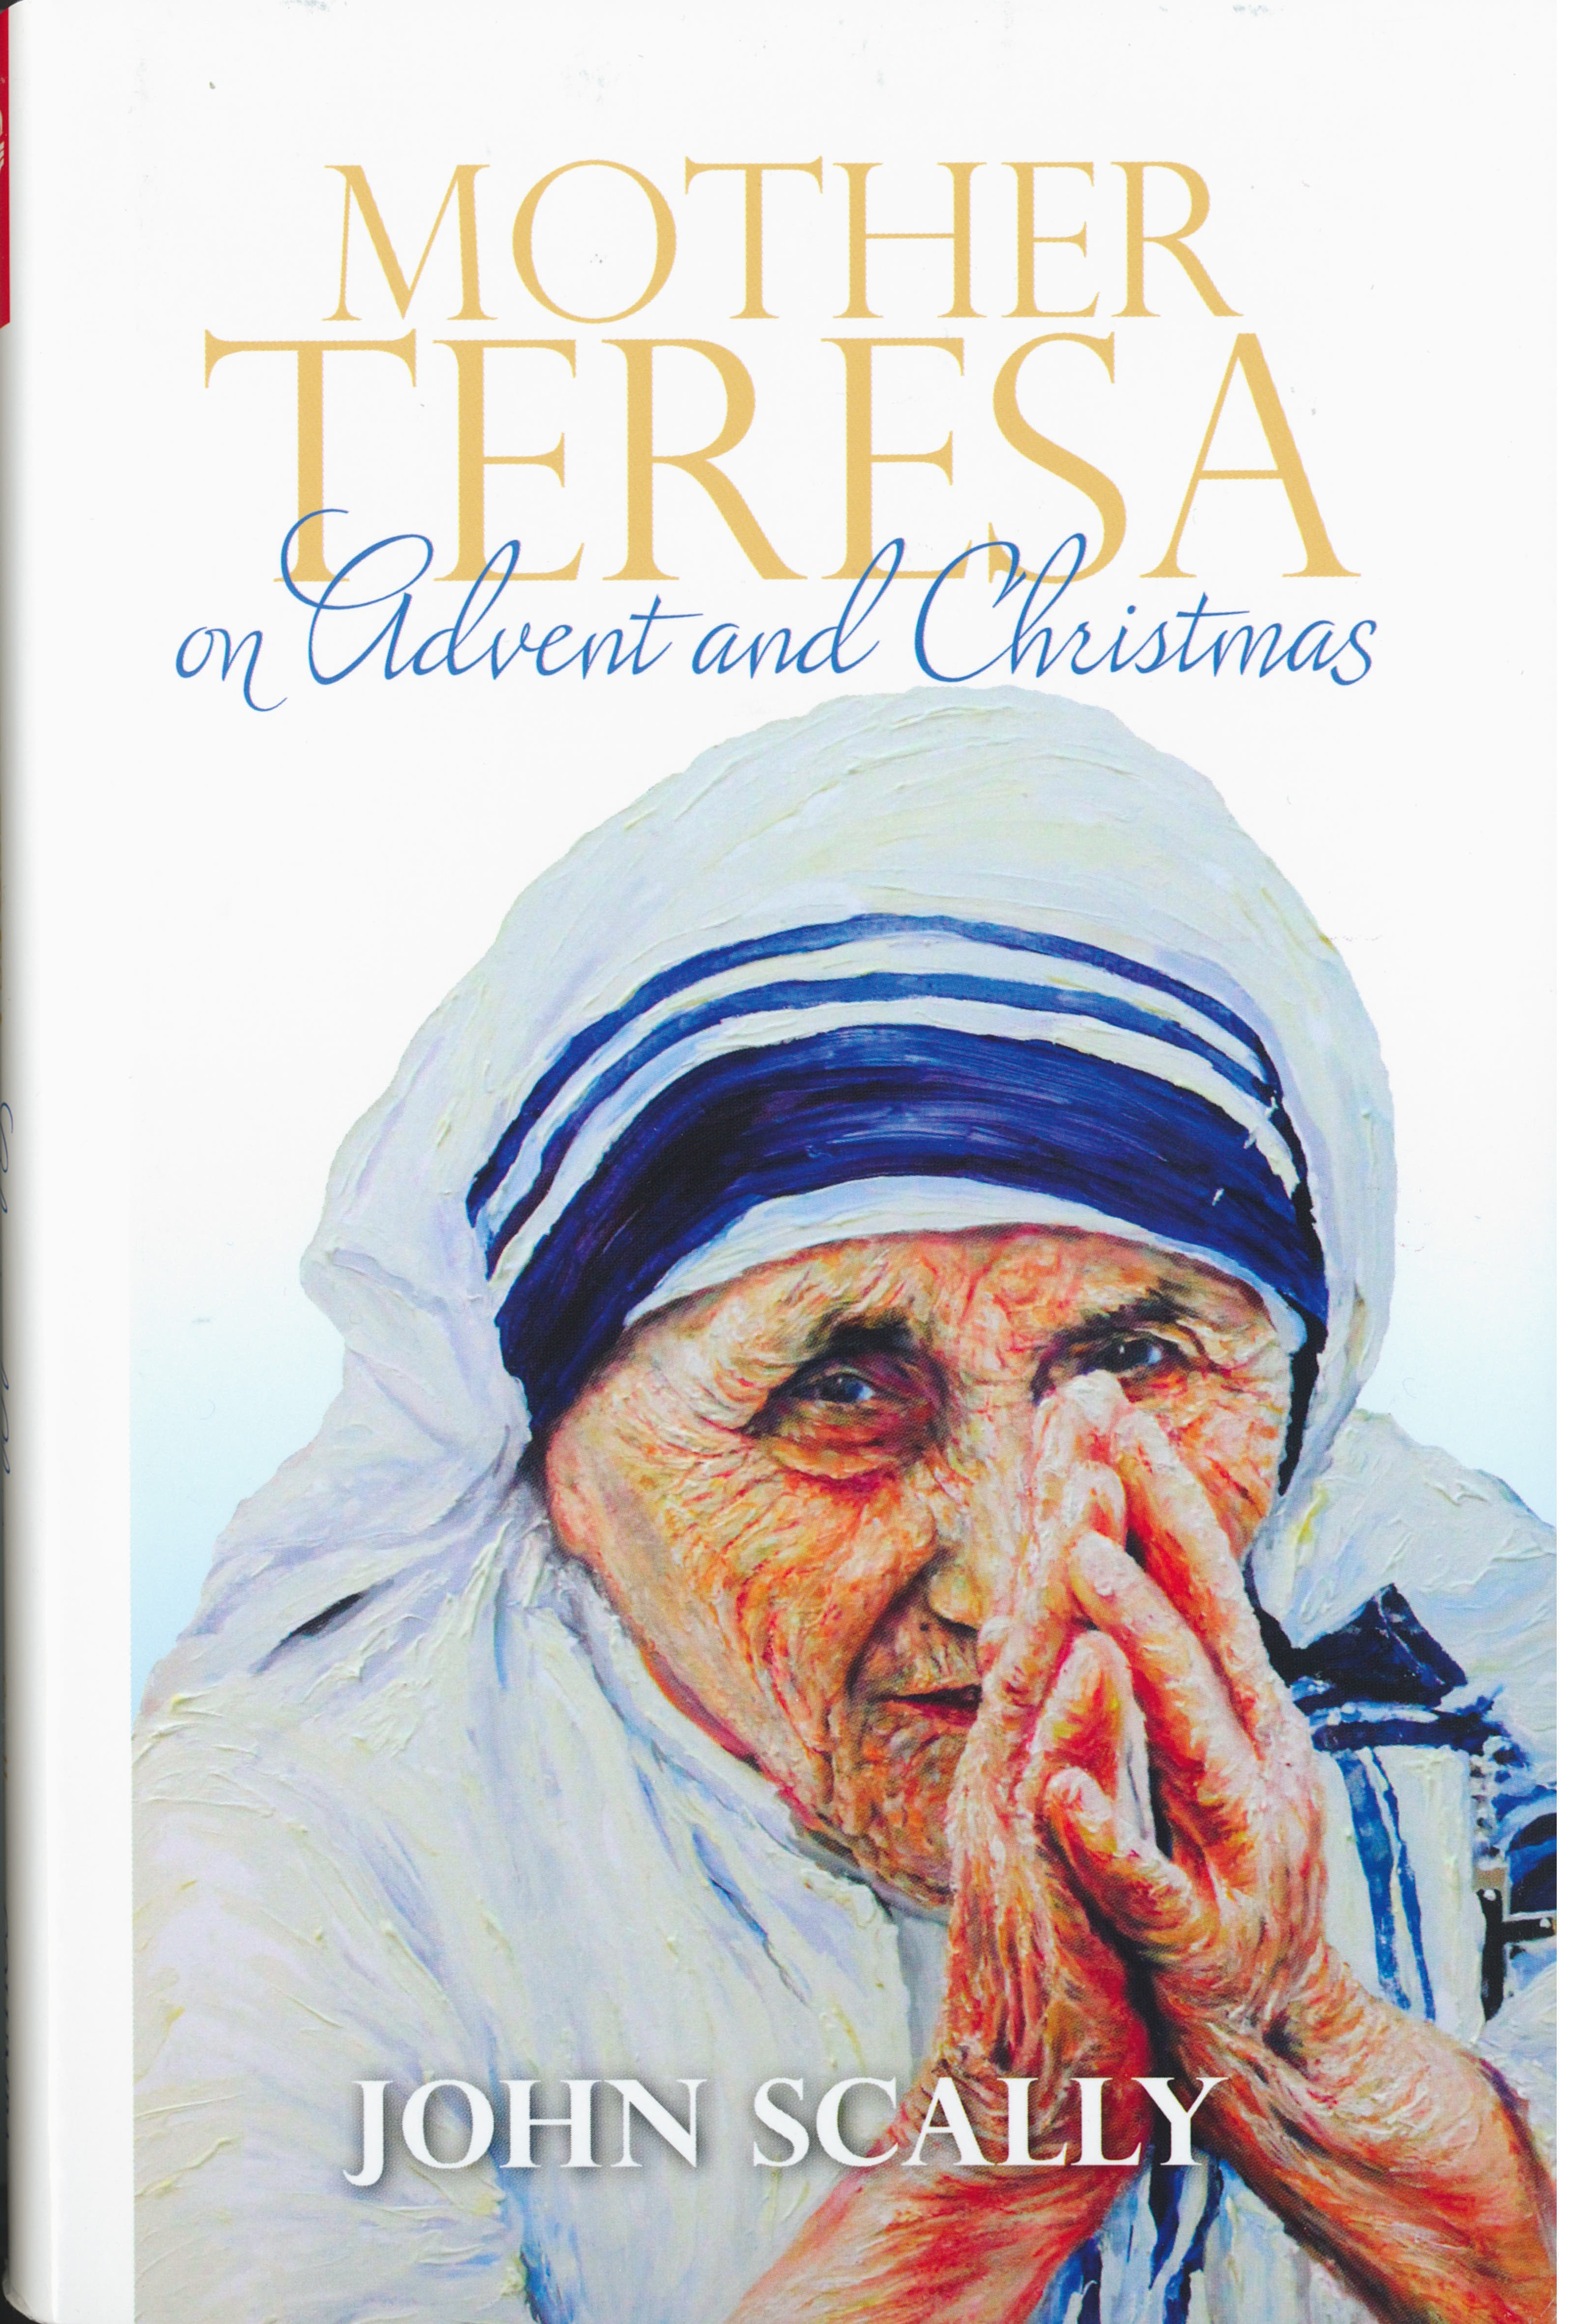 Mother Teresa on Advent and Christmas by John Scally 108-9781782181958